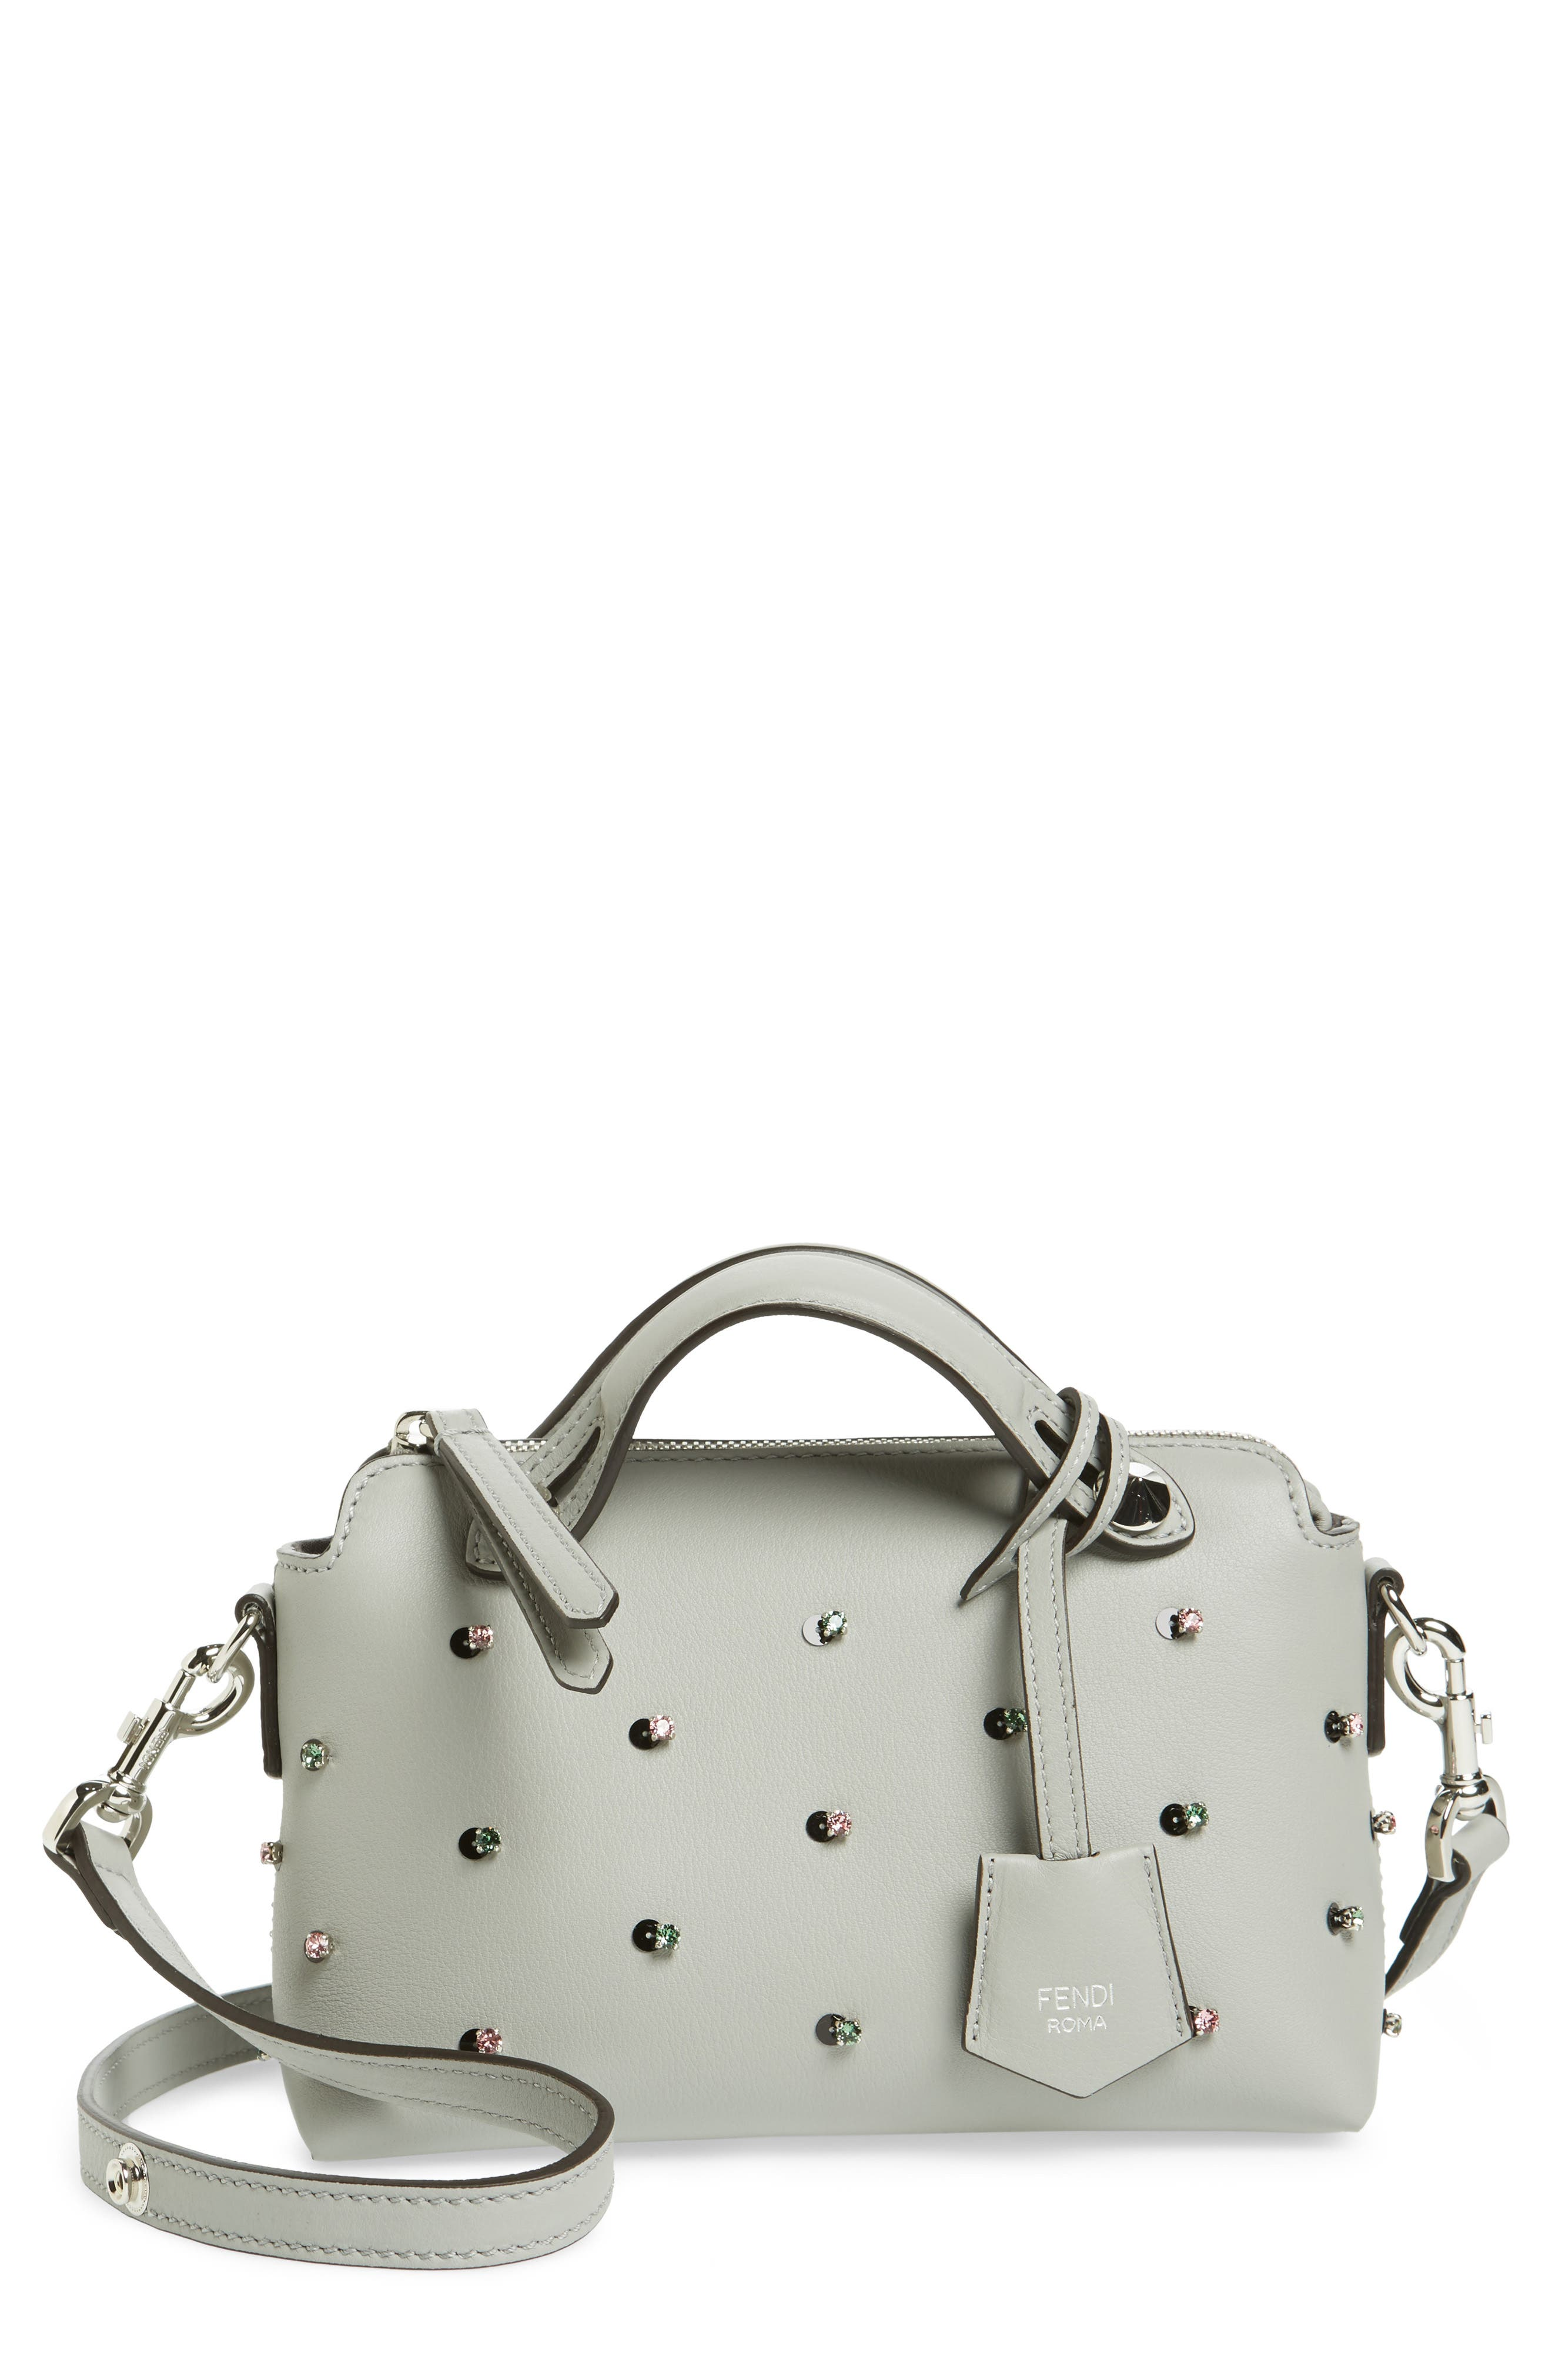 Alternate Image 1 Selected - Fendi Mini By the Way Crystal Embellished Convertible Leather Crossbody Bag